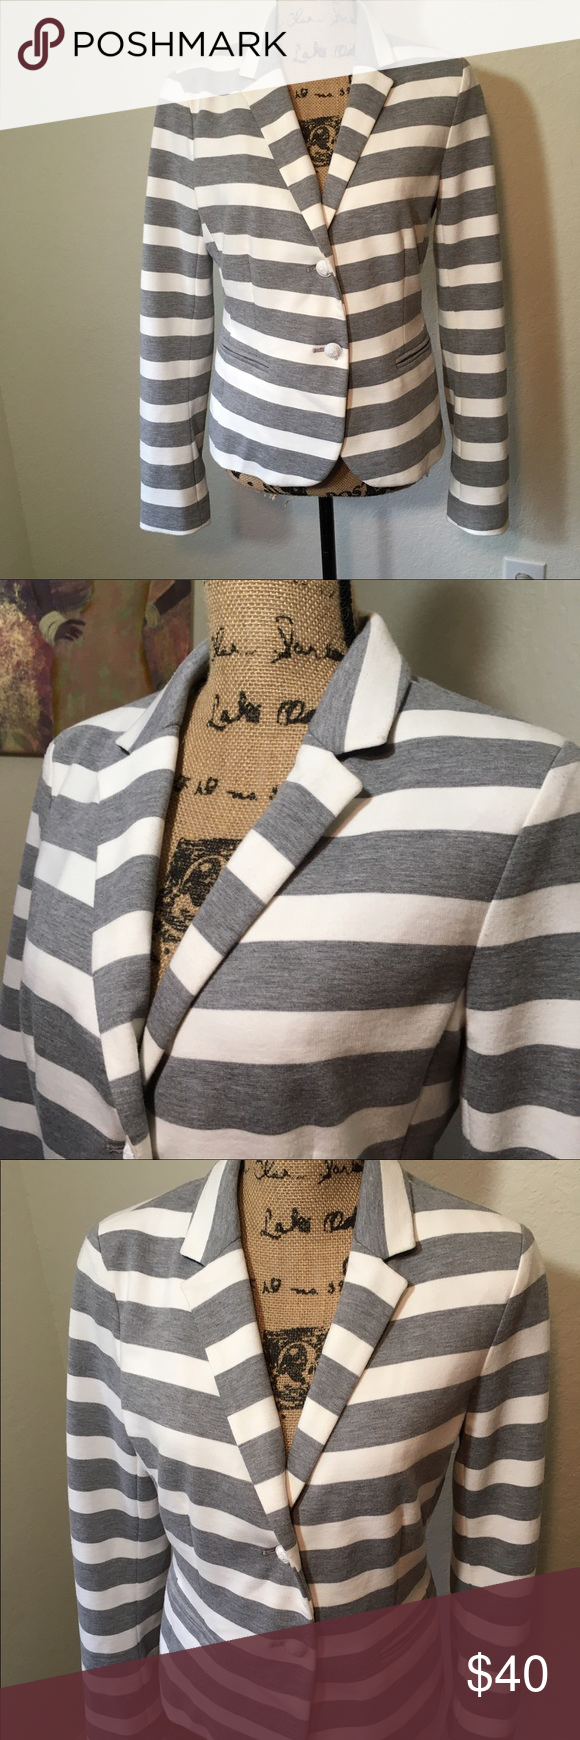 GAP Gray & White Striped Academy Blazer GAP Gray & White Striped Academy Blazer. Lined. Slight staining along collar in closeup picture. Minor Piling. In overall excellent condition. GAP Jackets & Coats Blazers